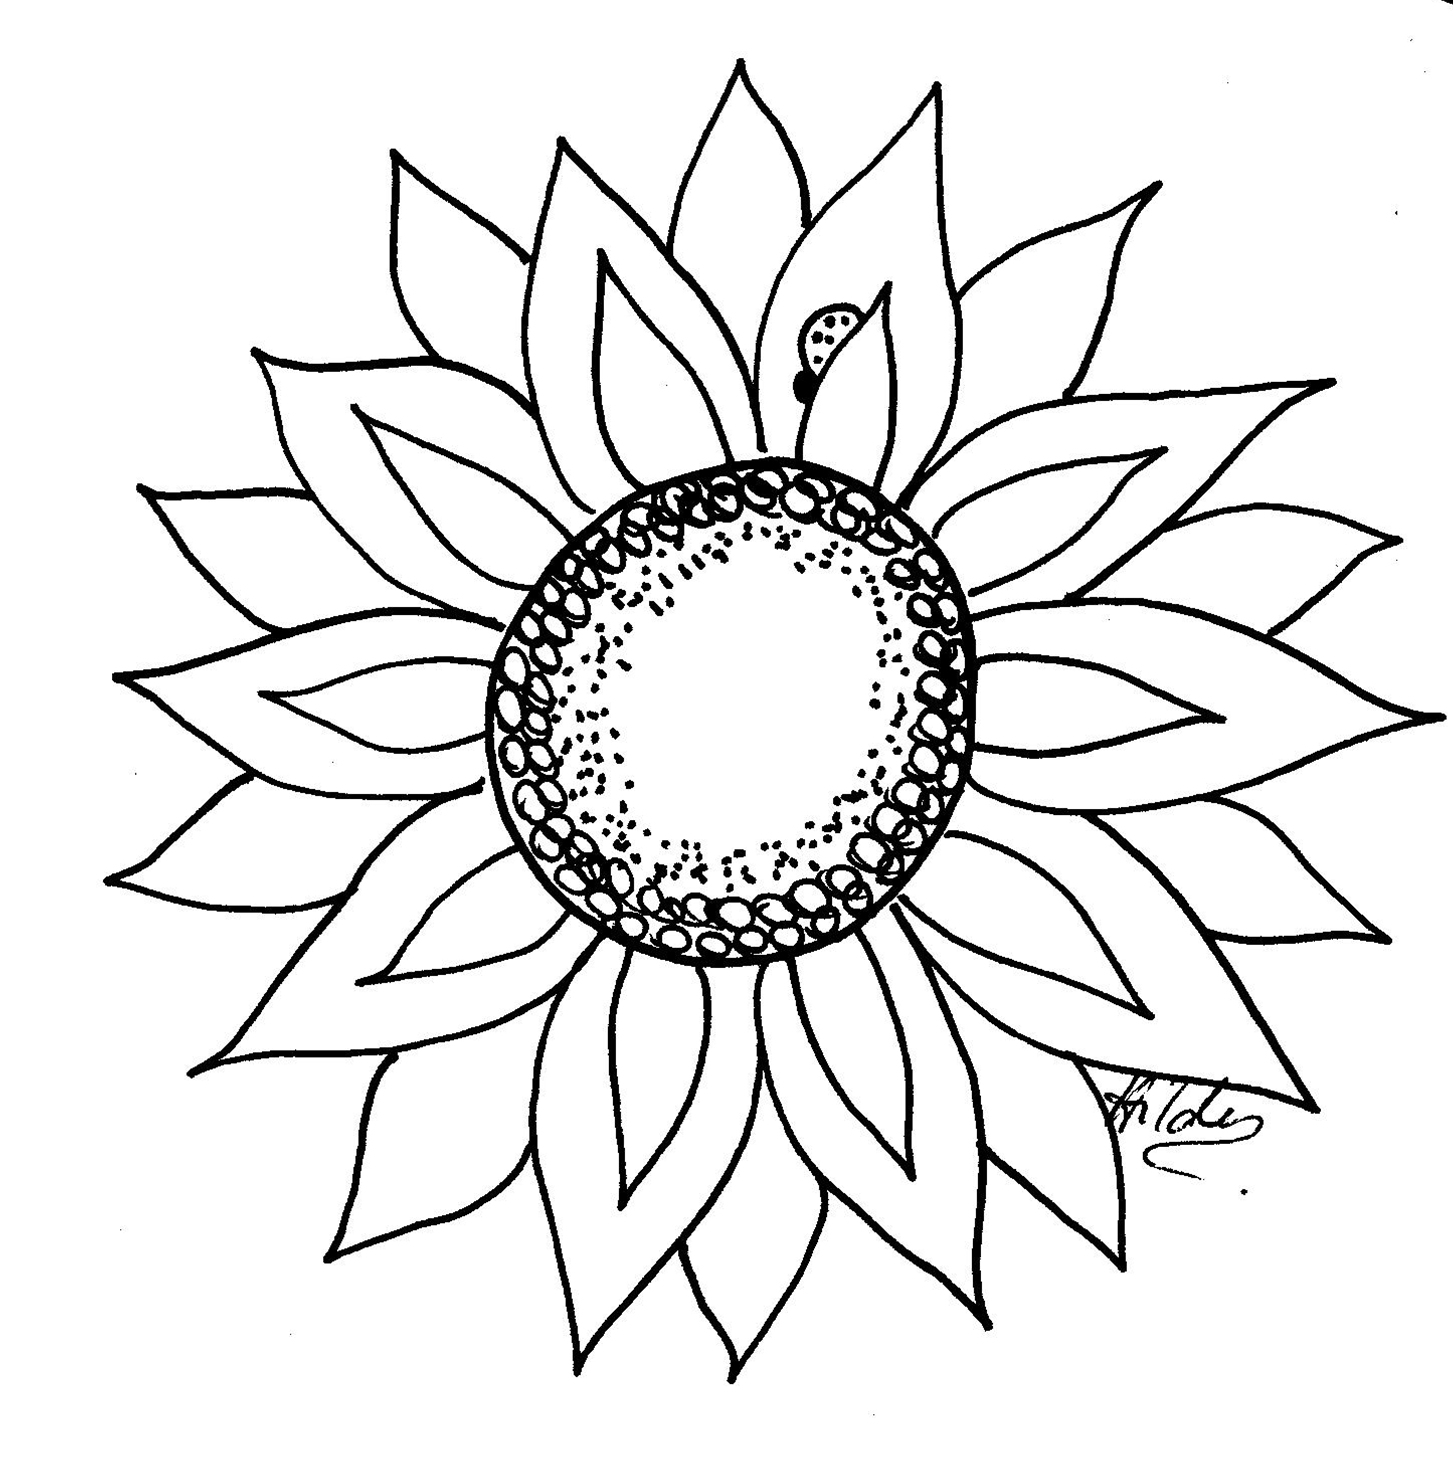 sunflower outline picture svg gt sunflower coloring outline flower free svg image outline sunflower picture